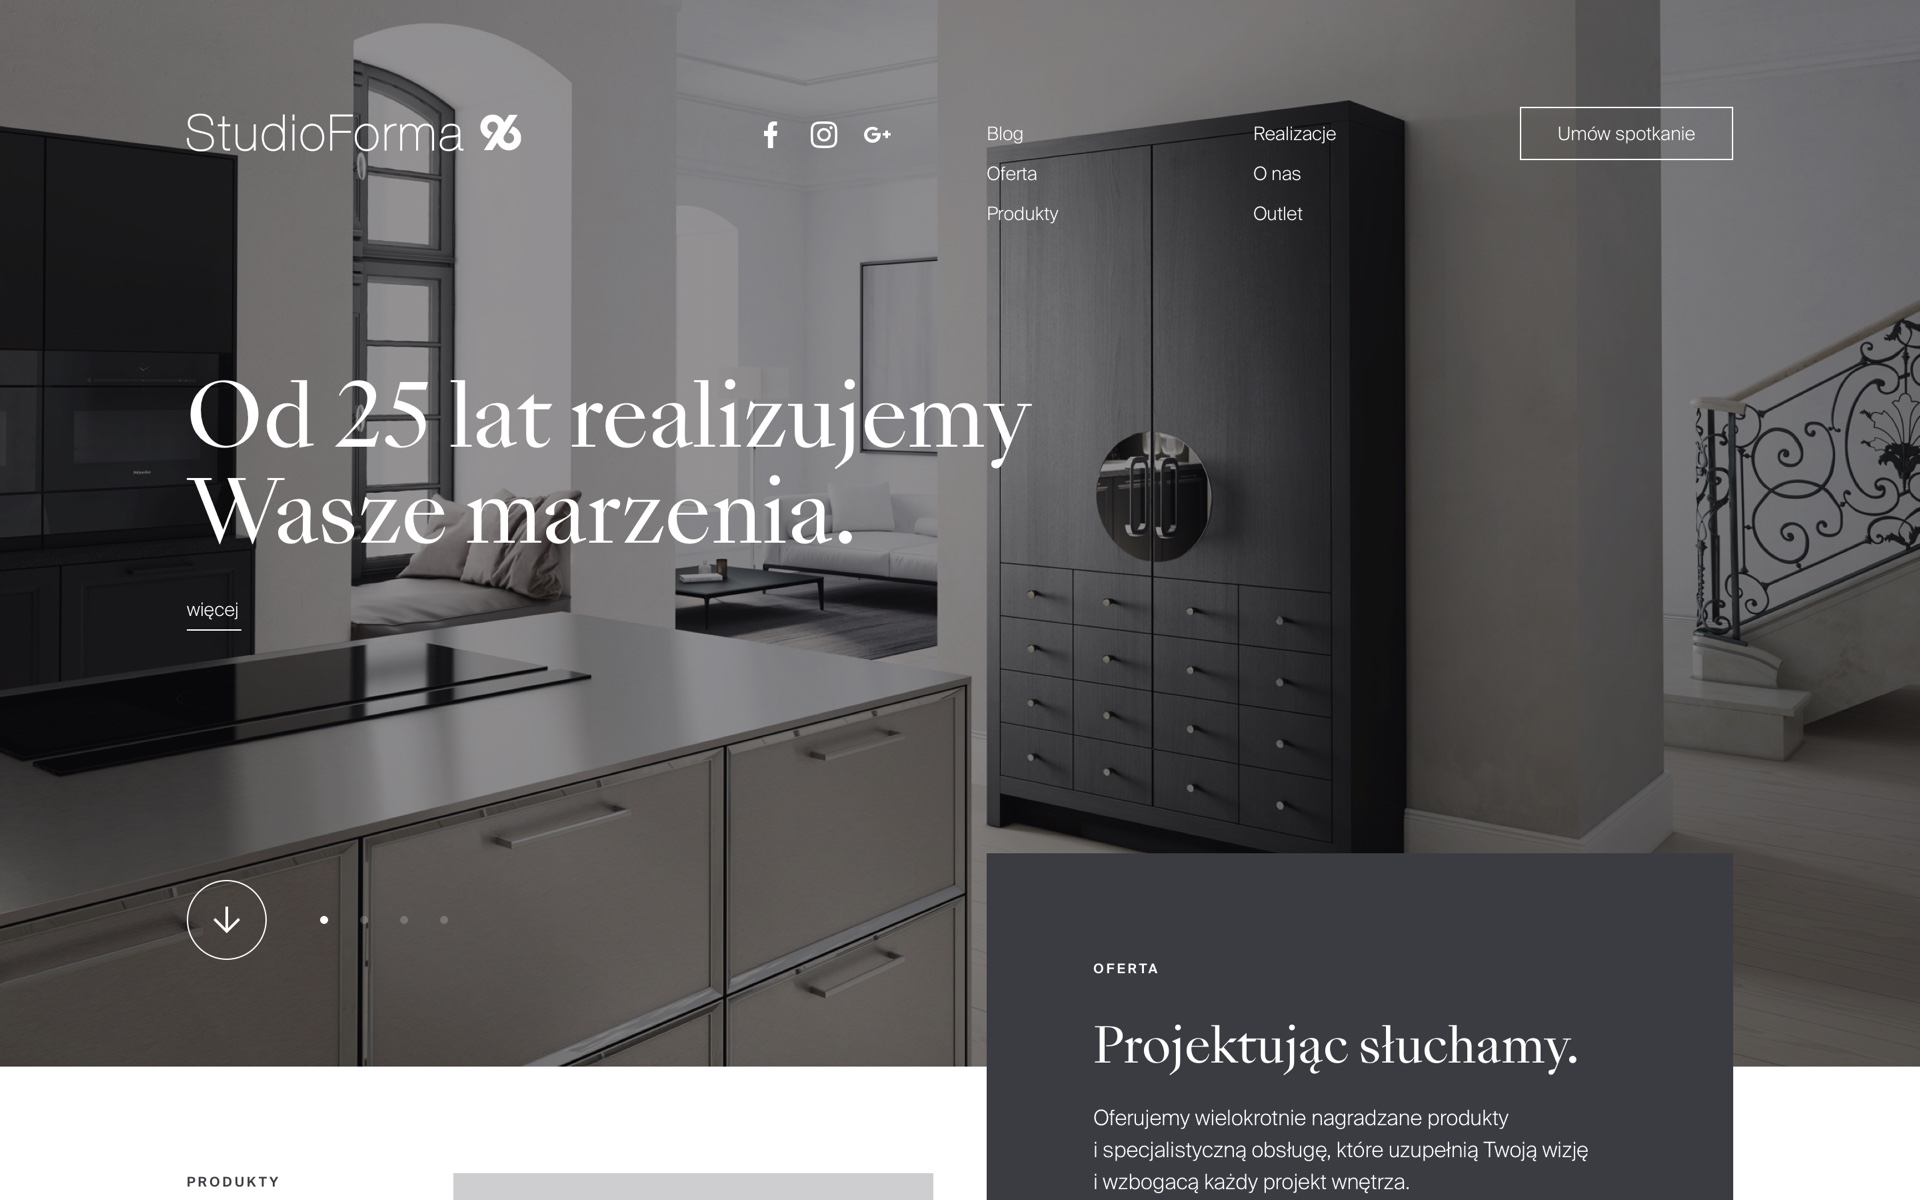 Homepage - Website - StudioForma 96 by Uniforma